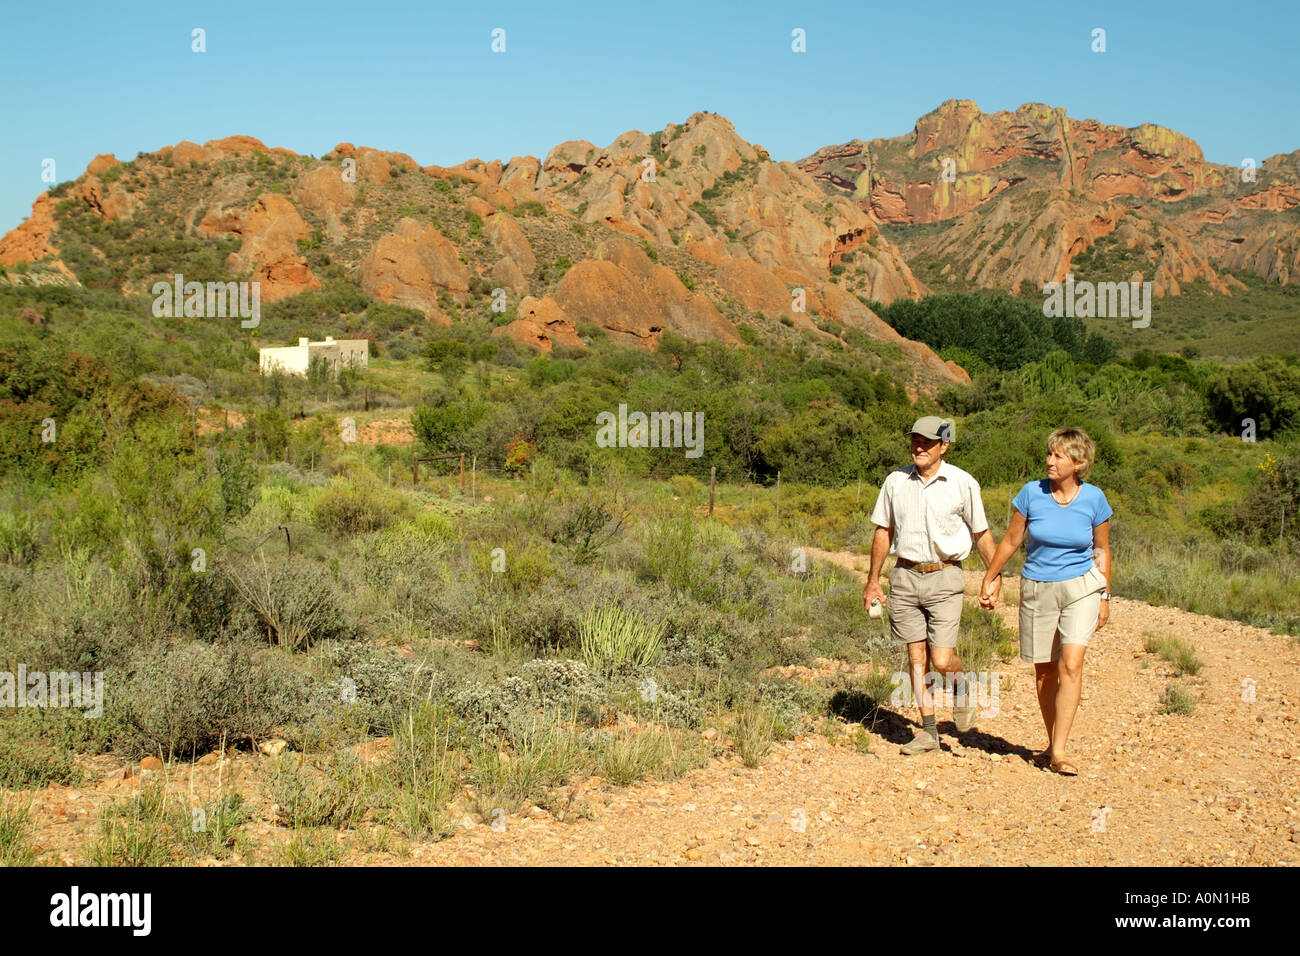 South African rural landscape couple walking Red Stone Hills area